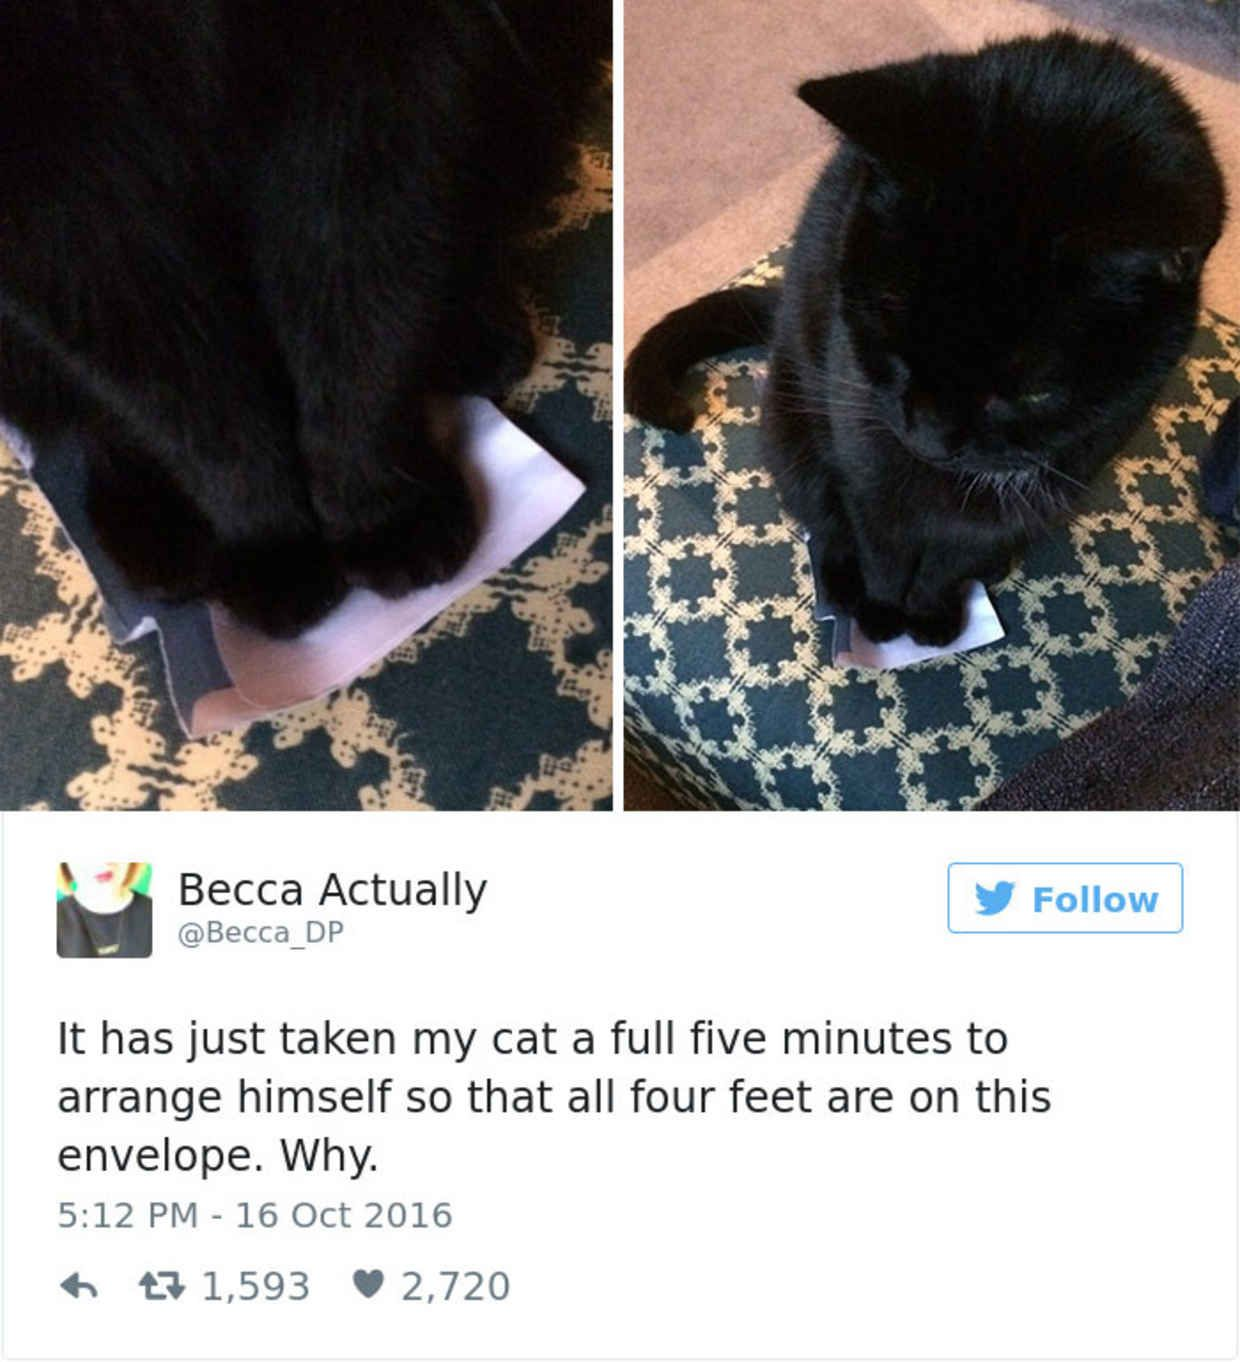 The Funniest Tweets About Cats In The Funniest Cats And - The 27 funniest tweets about cats in 2016